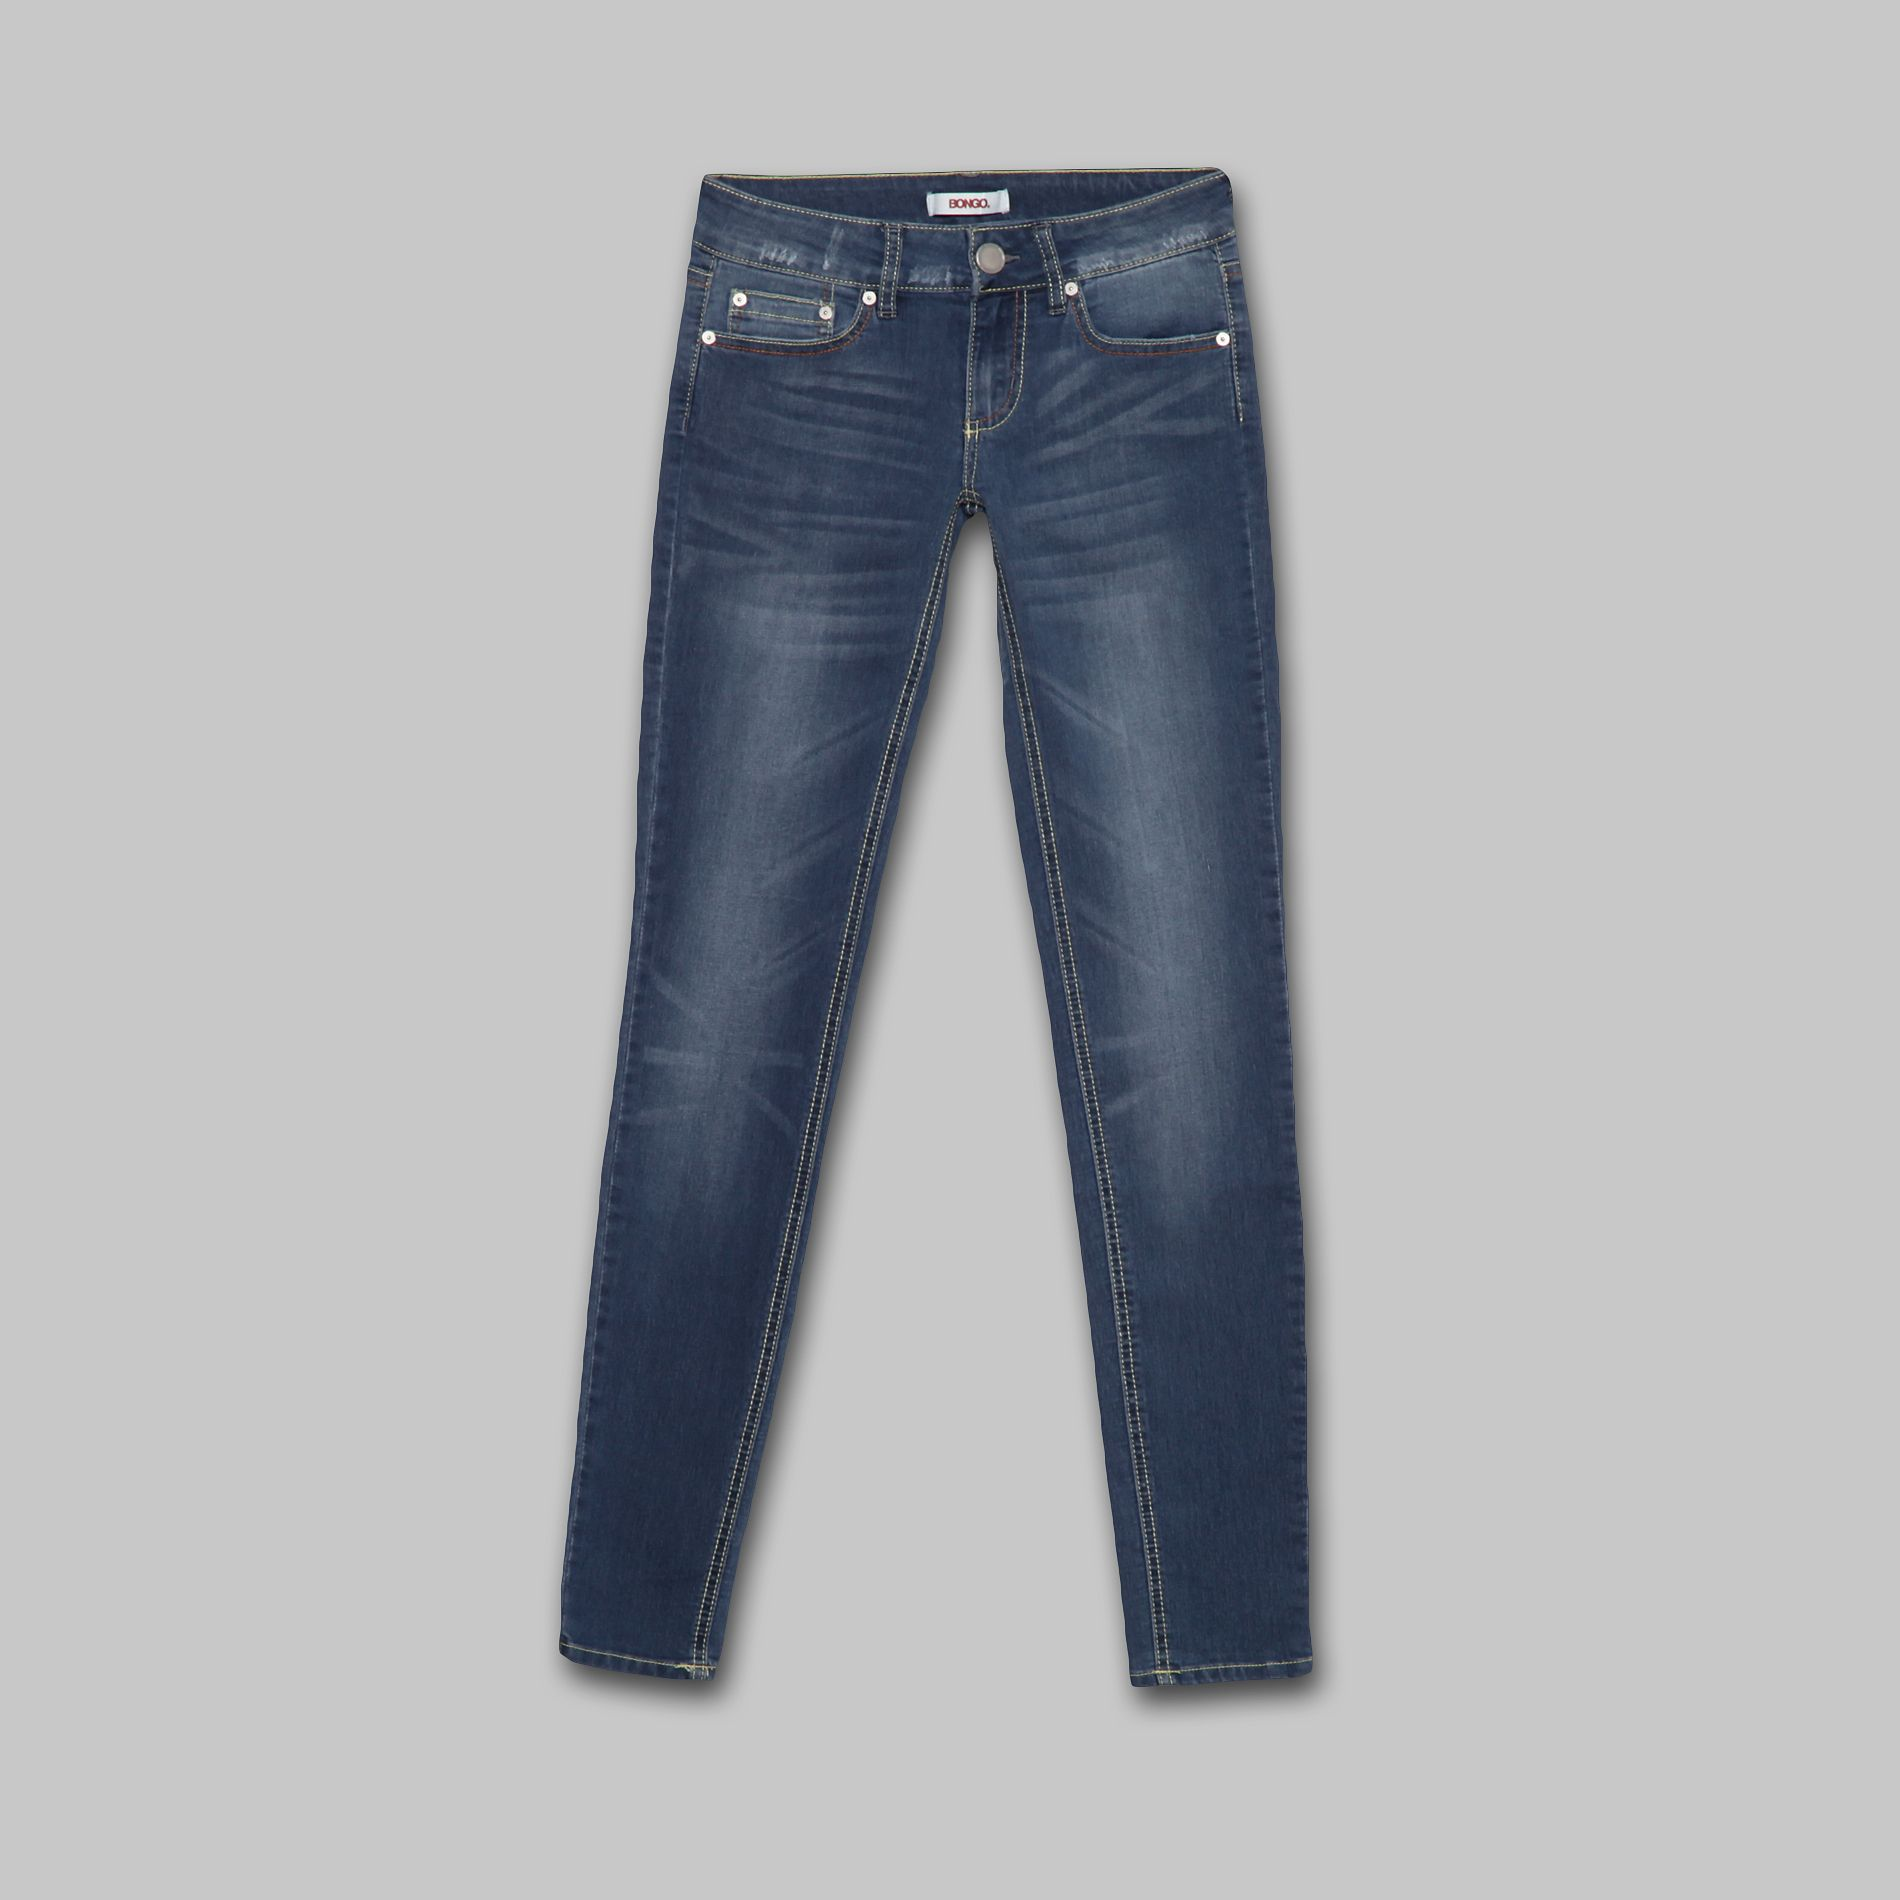 Bongo Junior's Jeans Skinny 'Second Skin' Light Rinse at Sears.com